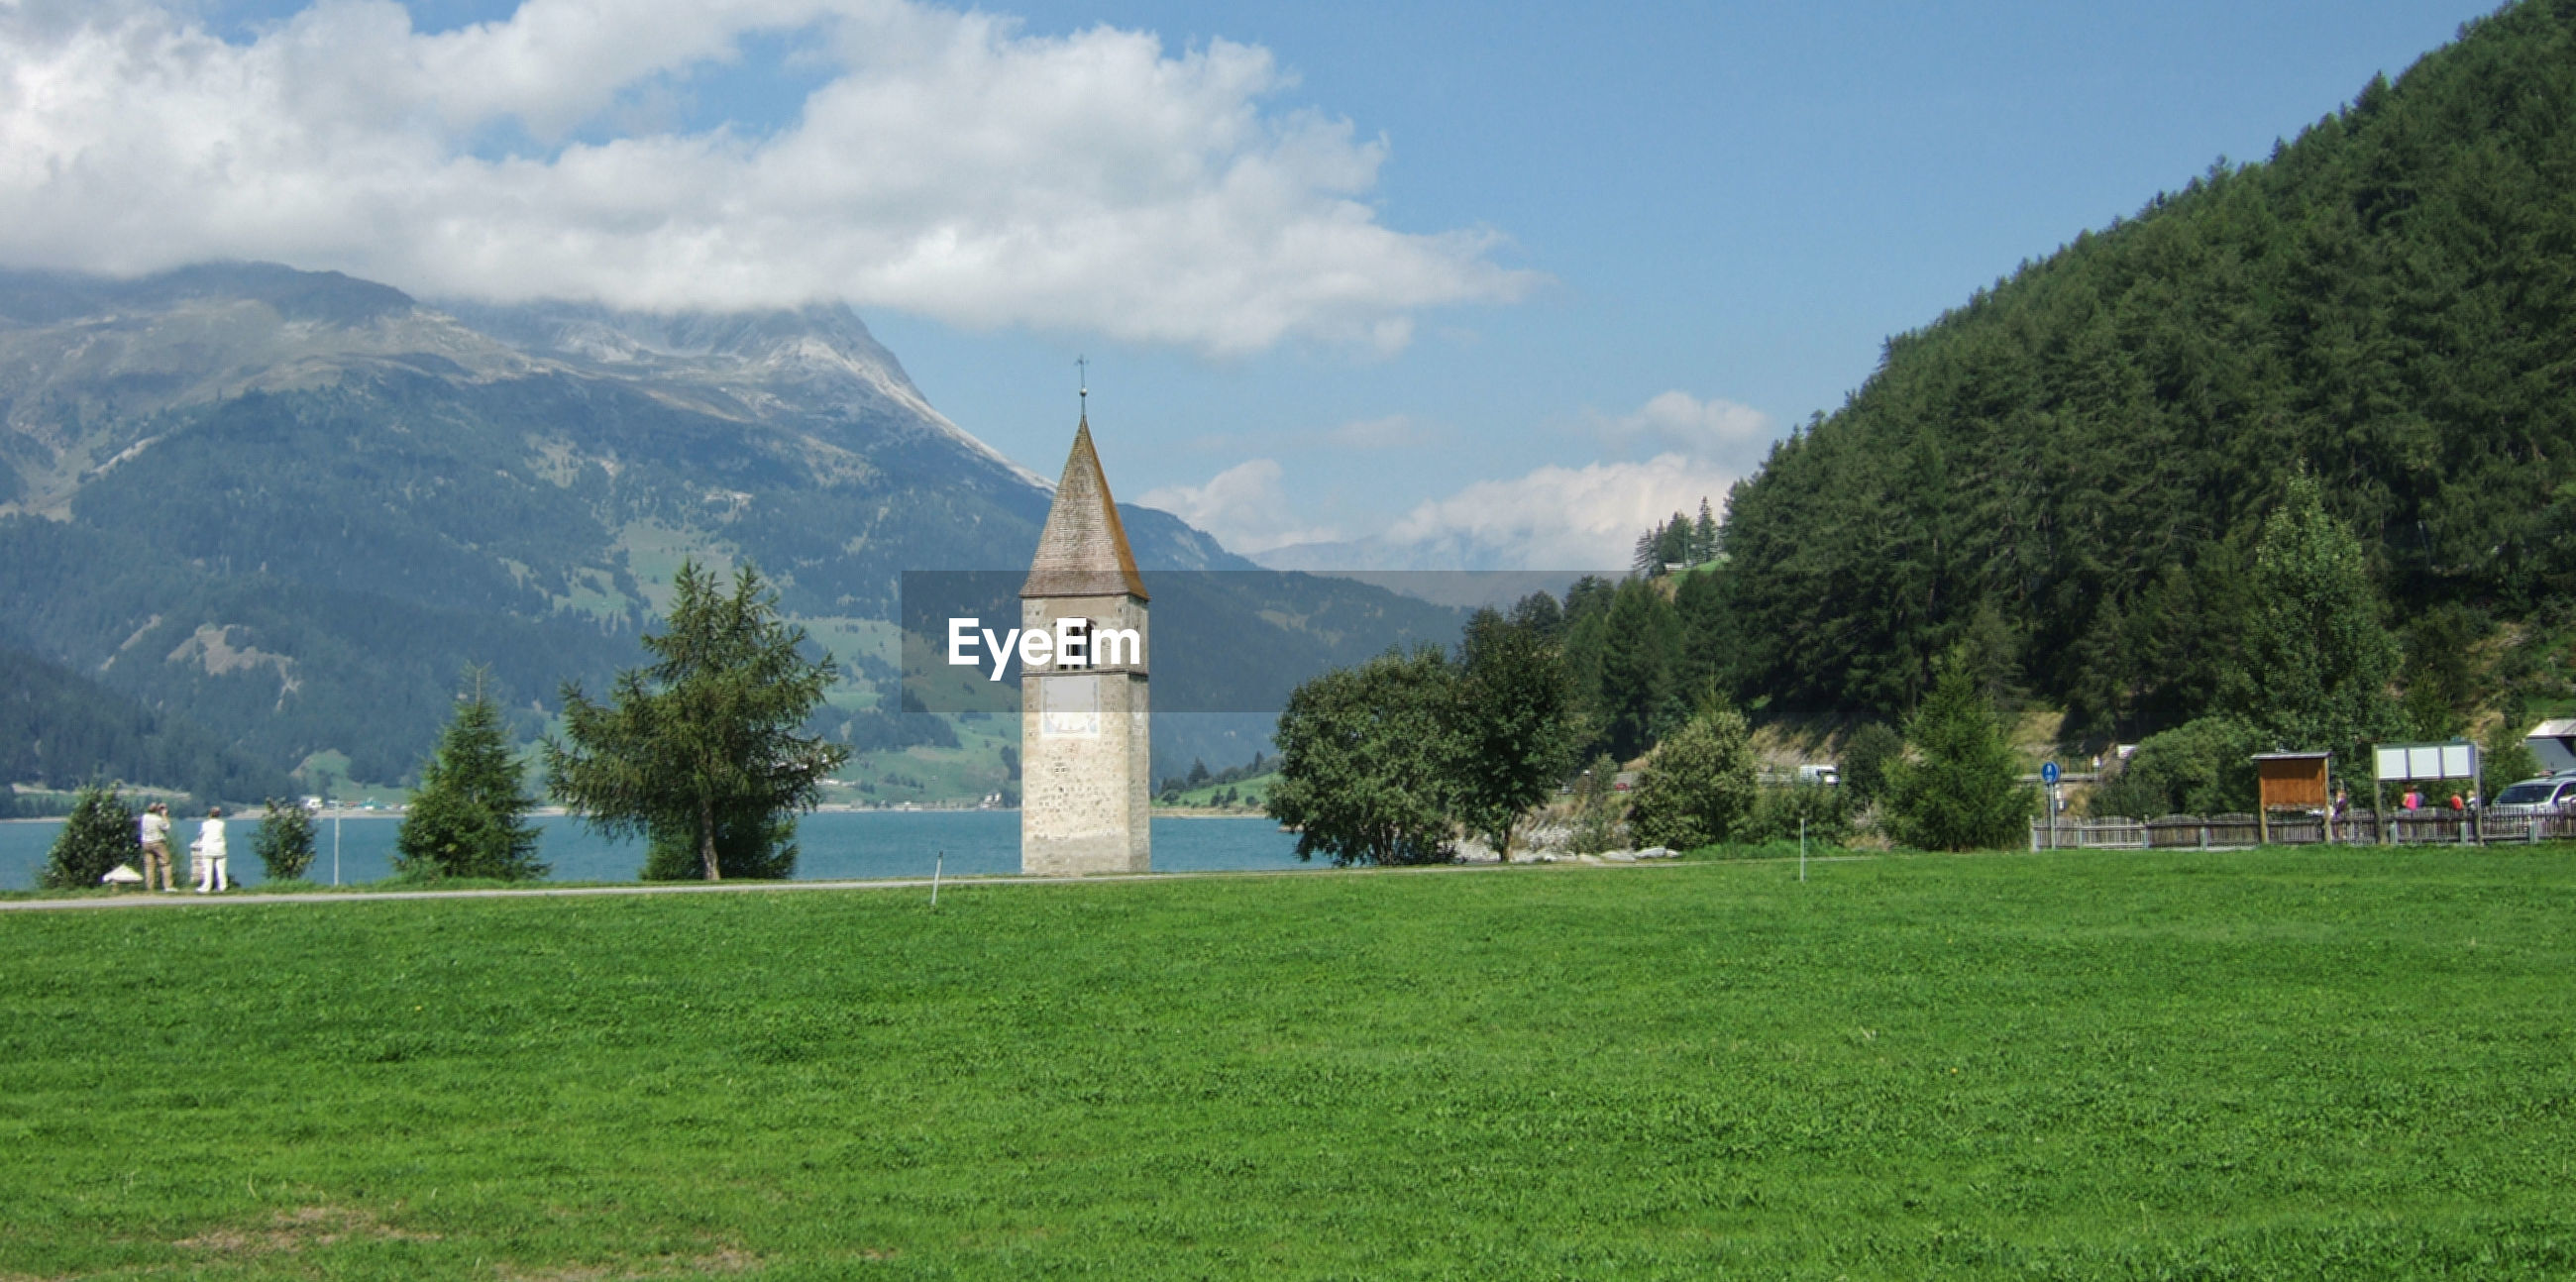 The bell tower of the former church of curon venosta in lake resia, south tyrol, italy.